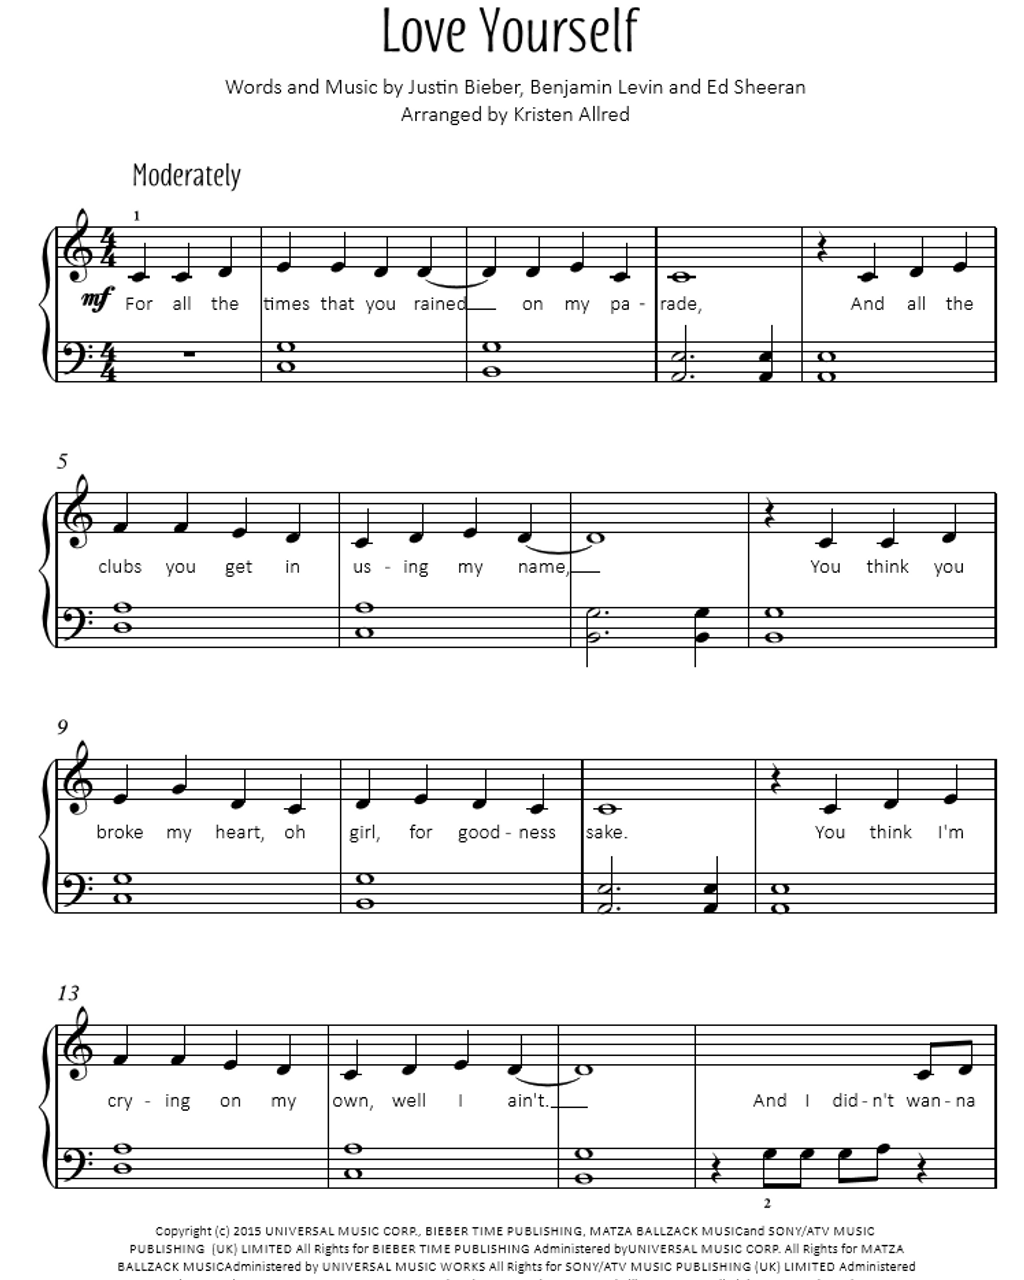 Piano easy piano sheet : Love Yourself by Justin Beiber - Easy Piano Sheet Music Download